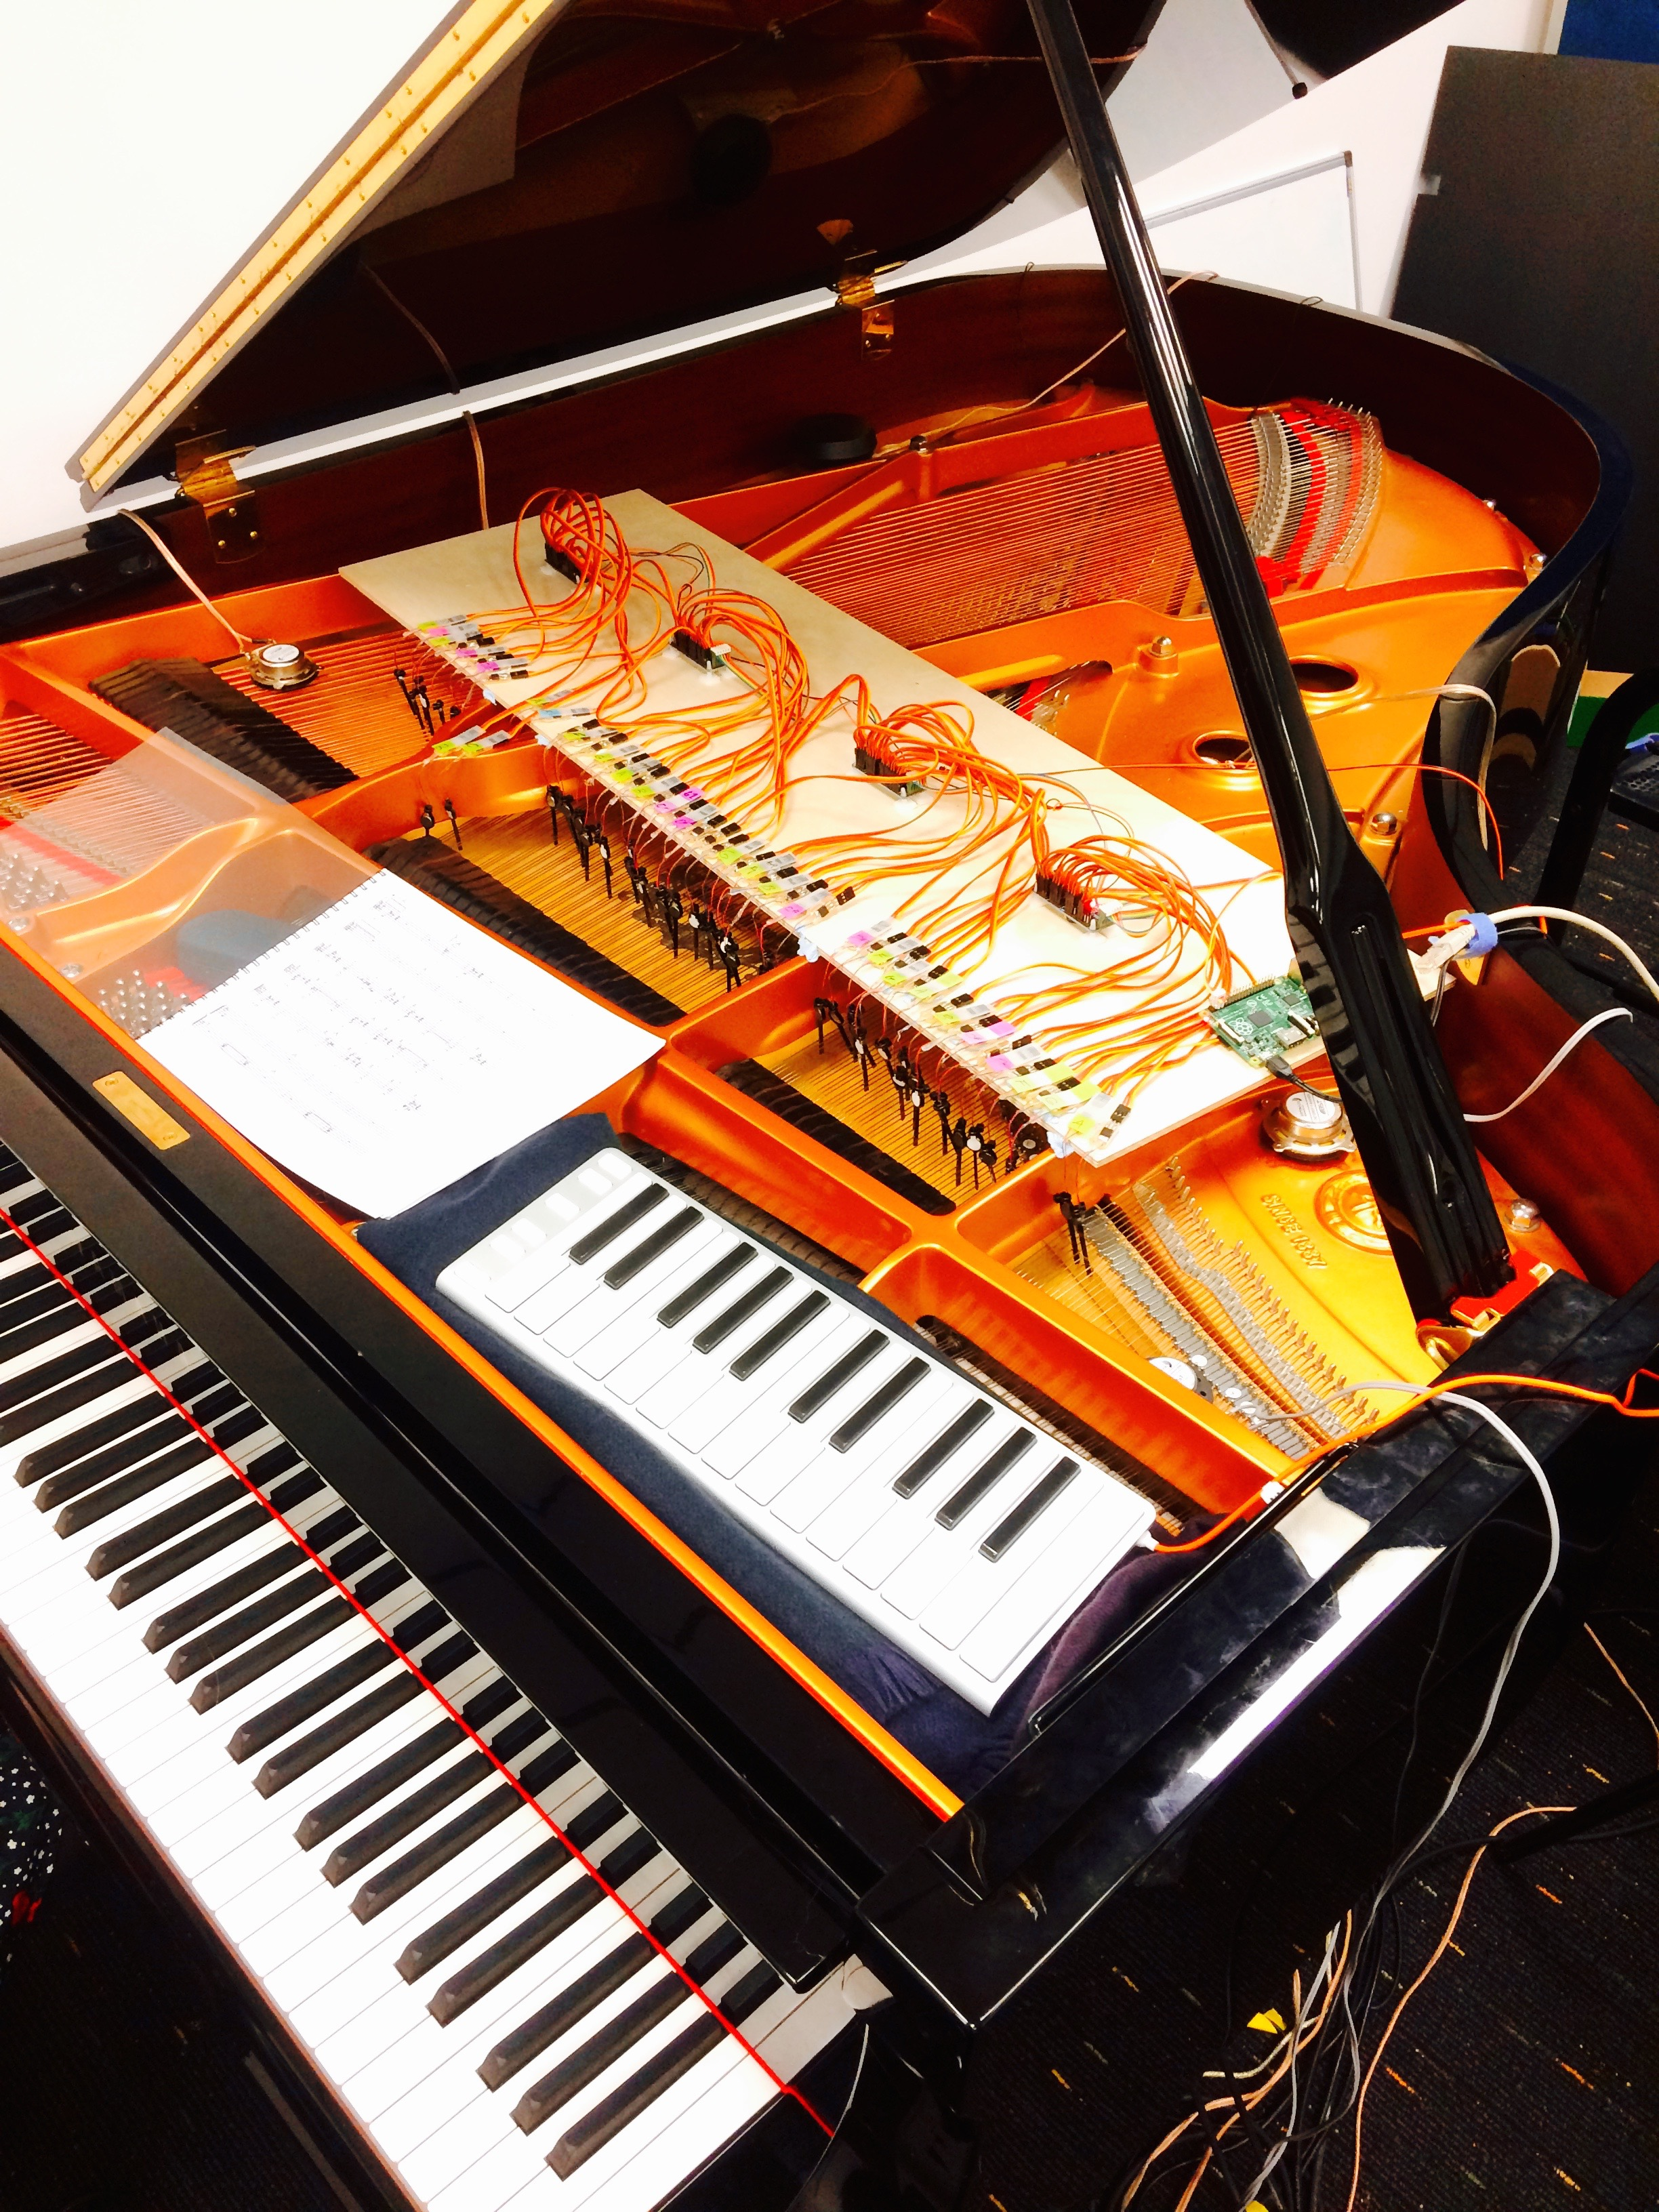 Robotic fingers, transducers, piano resonance feedback system installed in the piano at Goldsmith's Electronic Music Studio